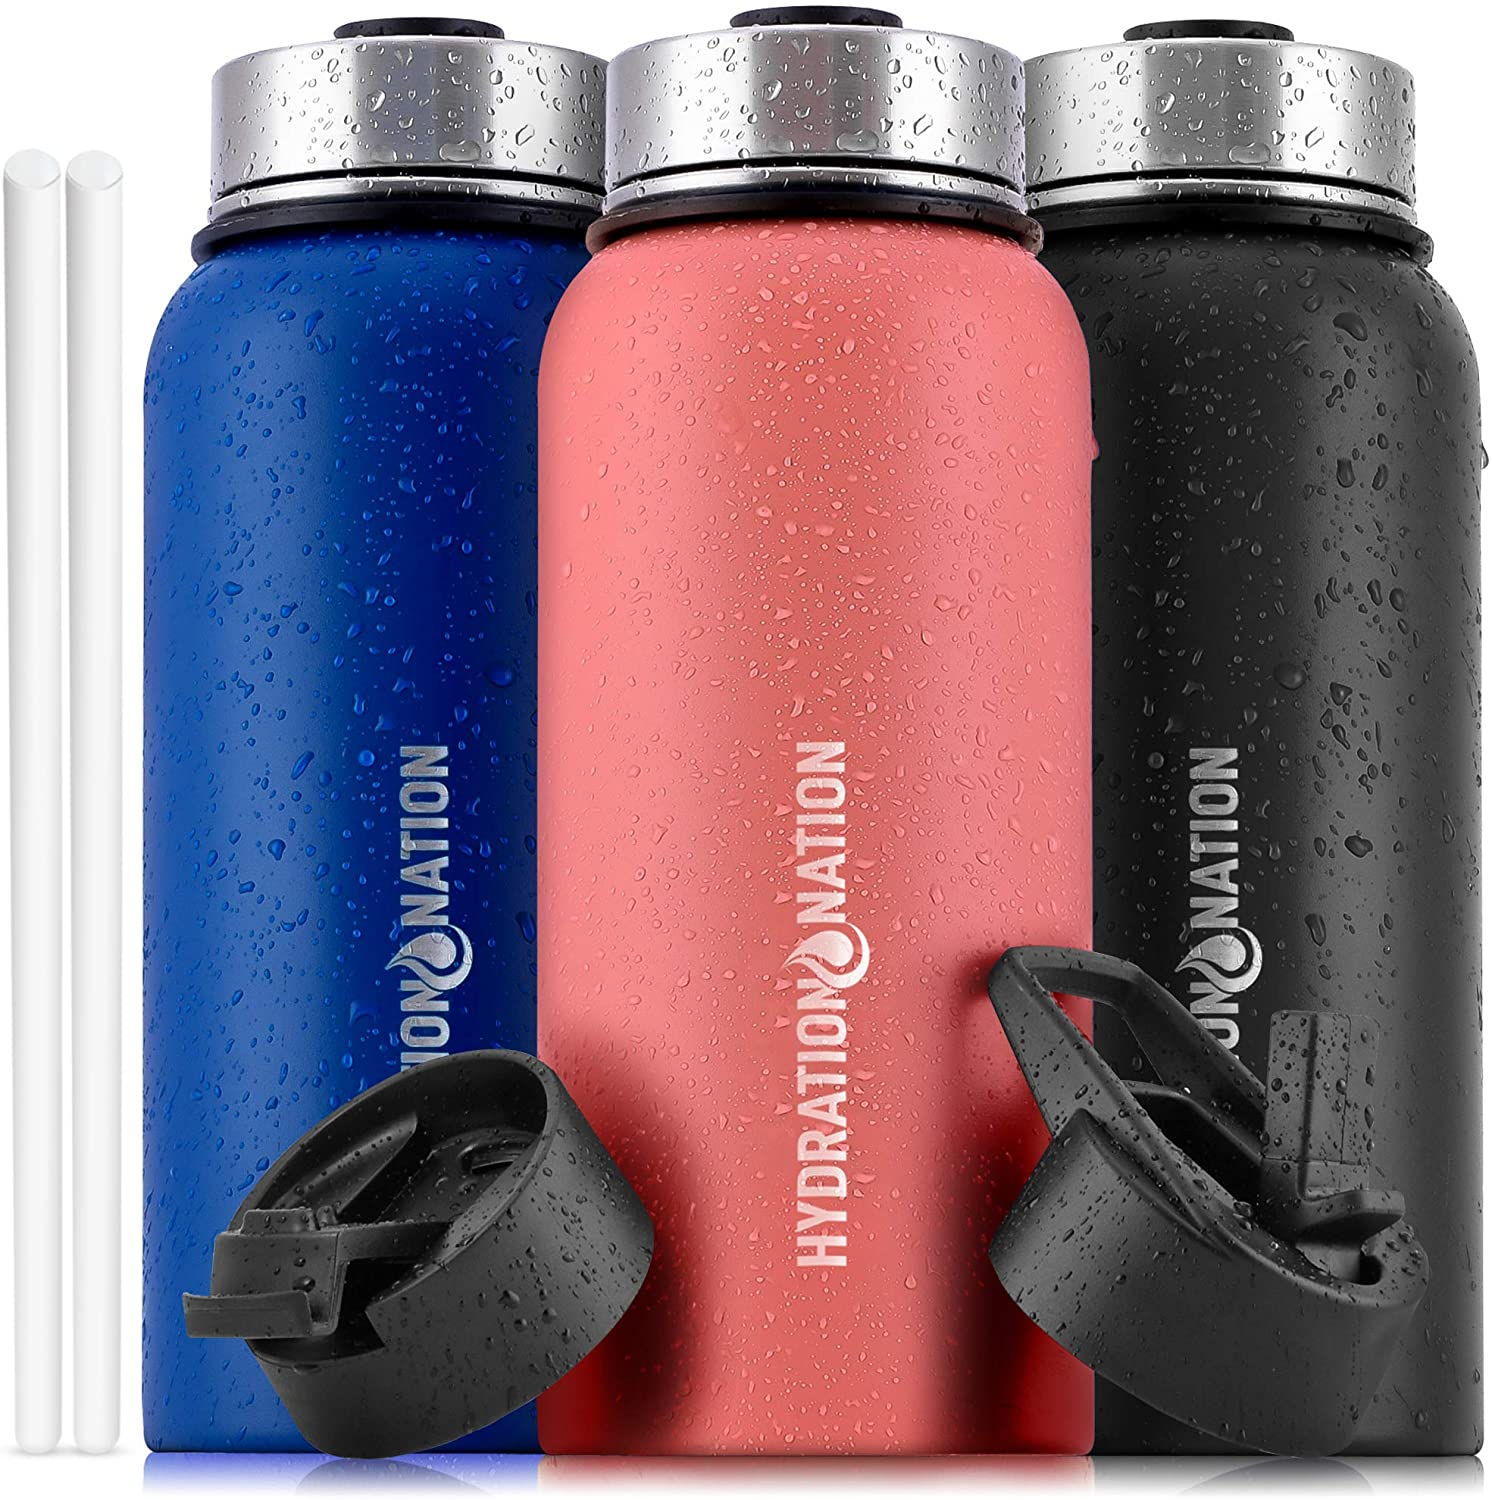 Hydration Nation (32oz) Vacuum Insulated Water Bottle - Durable Metal Water Bottle For Sports & Outdoor - Thermo Stainless Steel Water Bottle With Straw & 3 Lids For Hot & Cold Drinks (Peach)